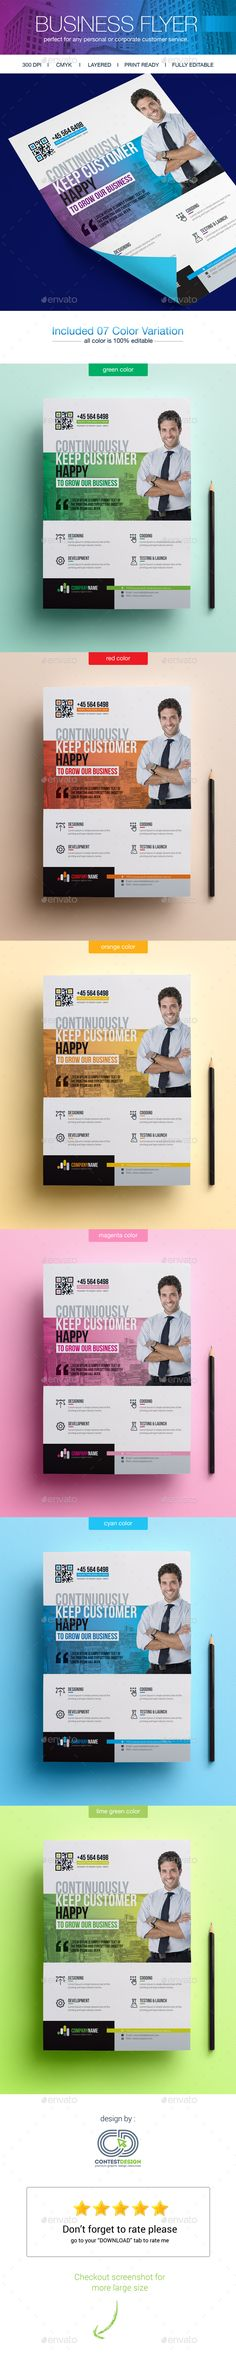 Corporate Business Flyers  — PSD Template #flyer printing #flyers template • Download ➝ https://graphicriver.net/item/corporate-business-flyers/18413963?ref=pxcr                                                                                                                                                                                 More